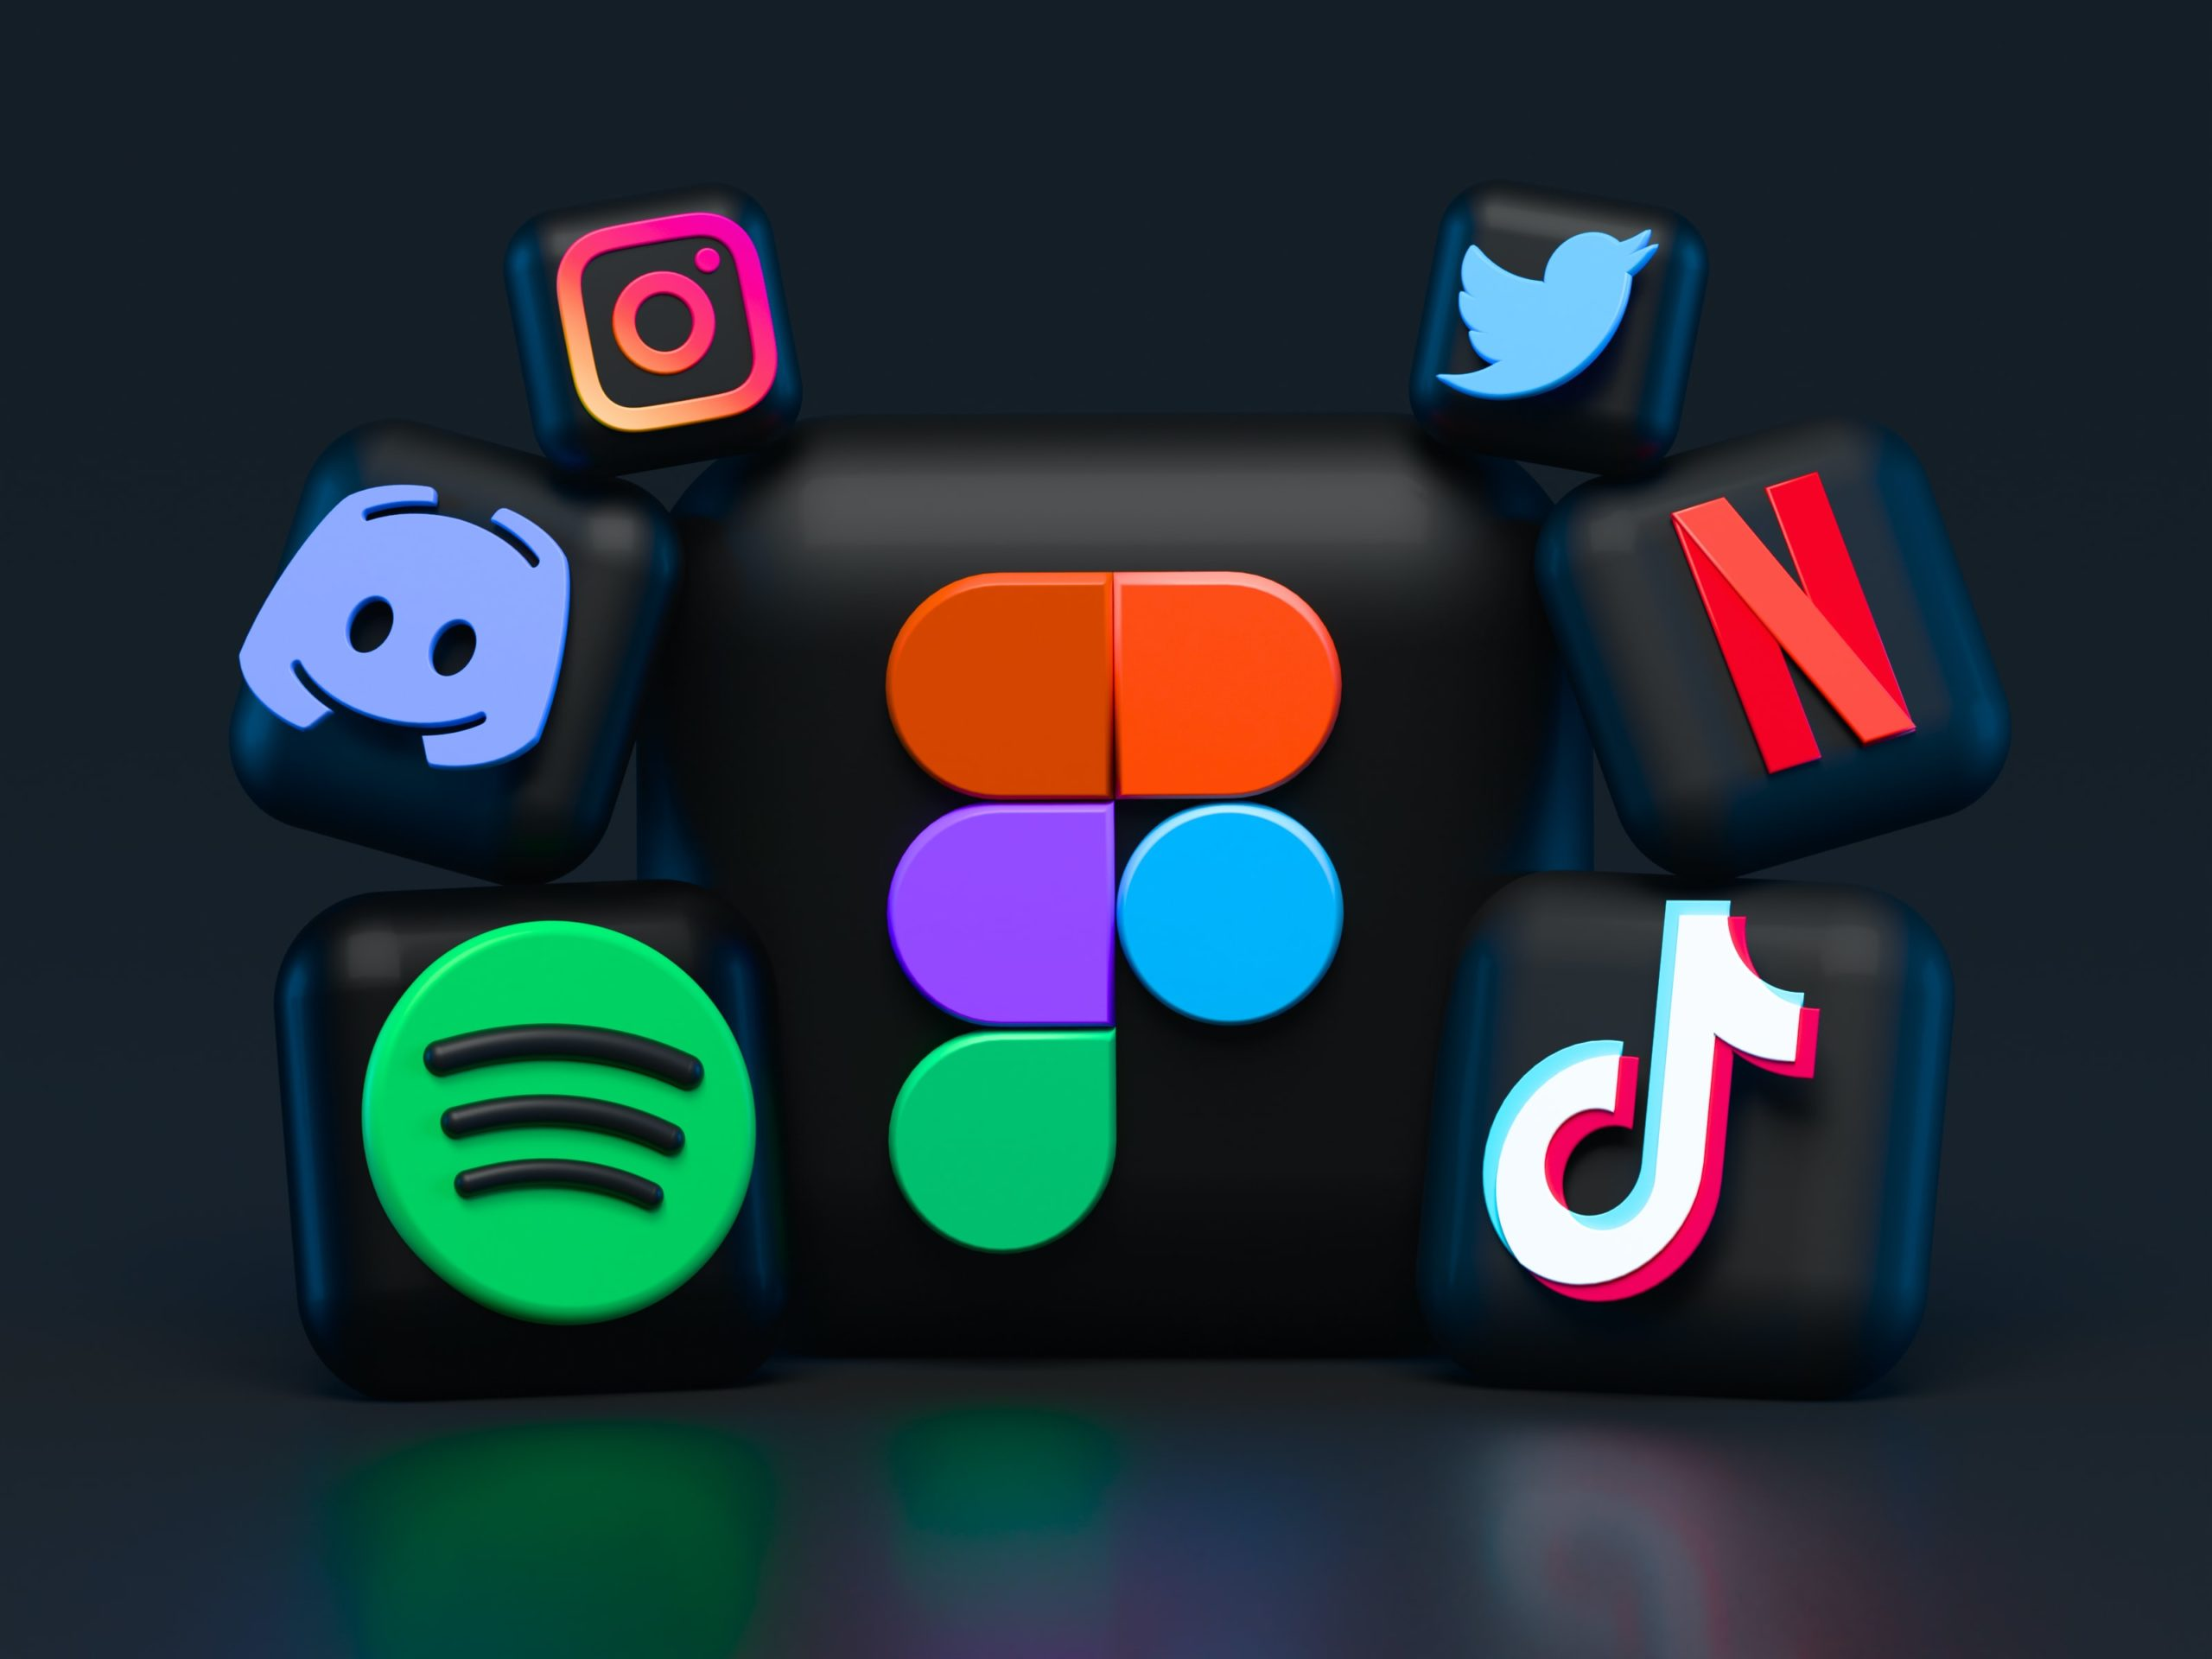 3D social media icons on a black background